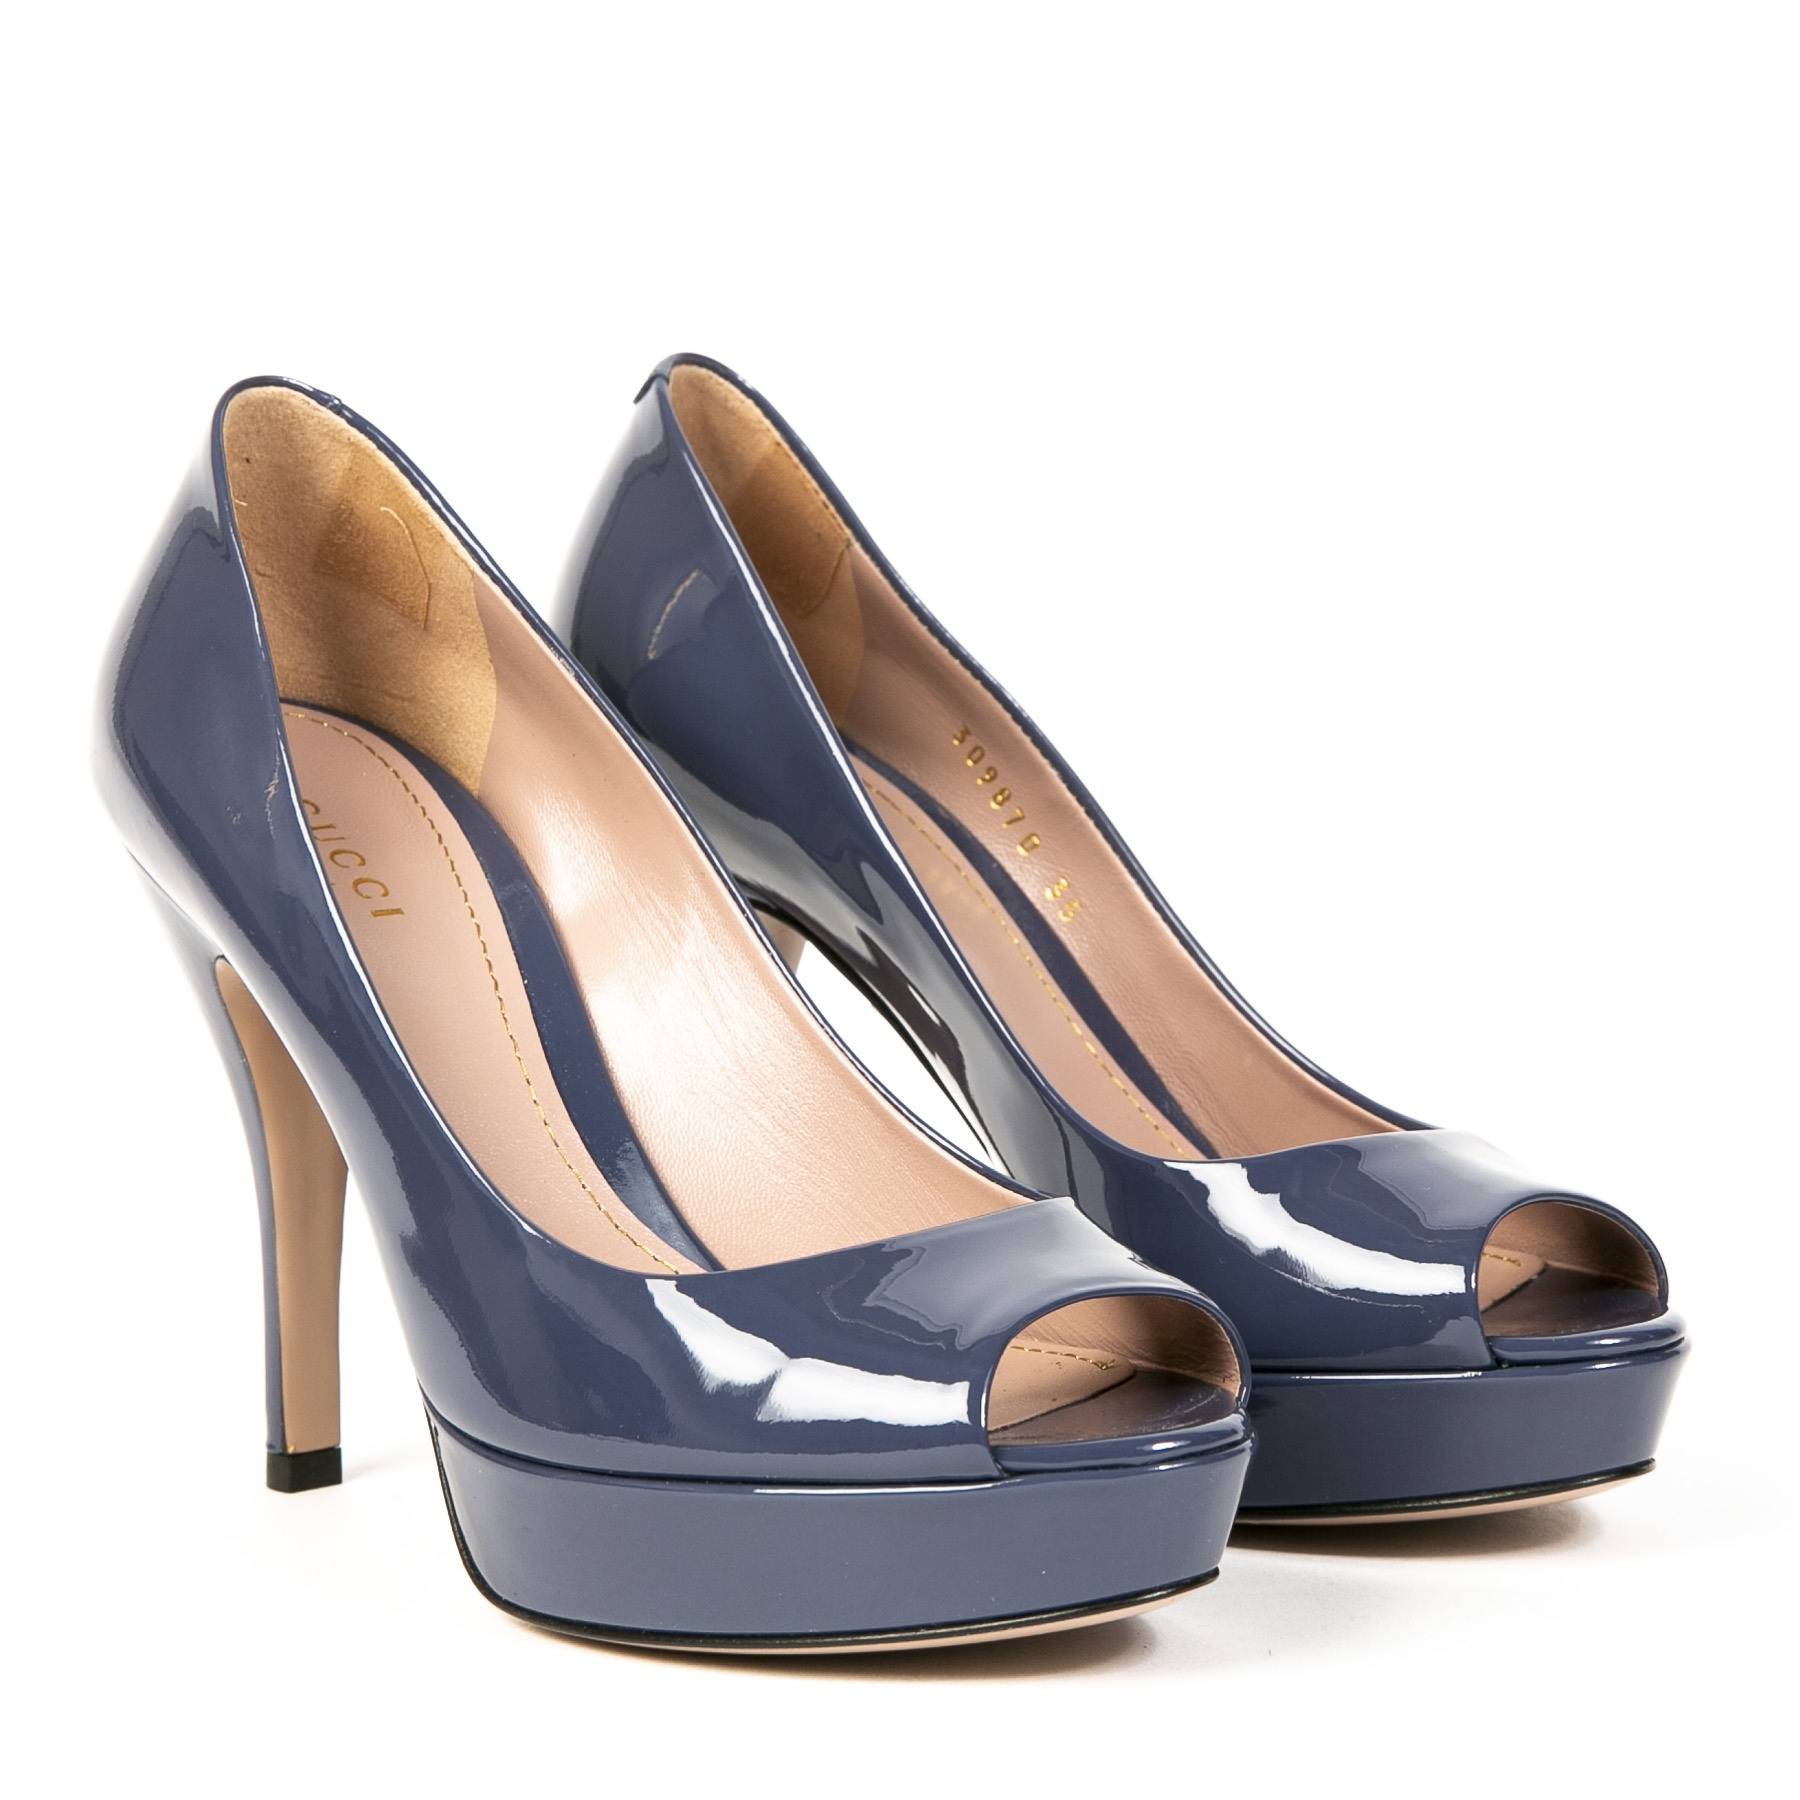 Gucci Blue Patent Leather Peep-Toe Platform Pumps